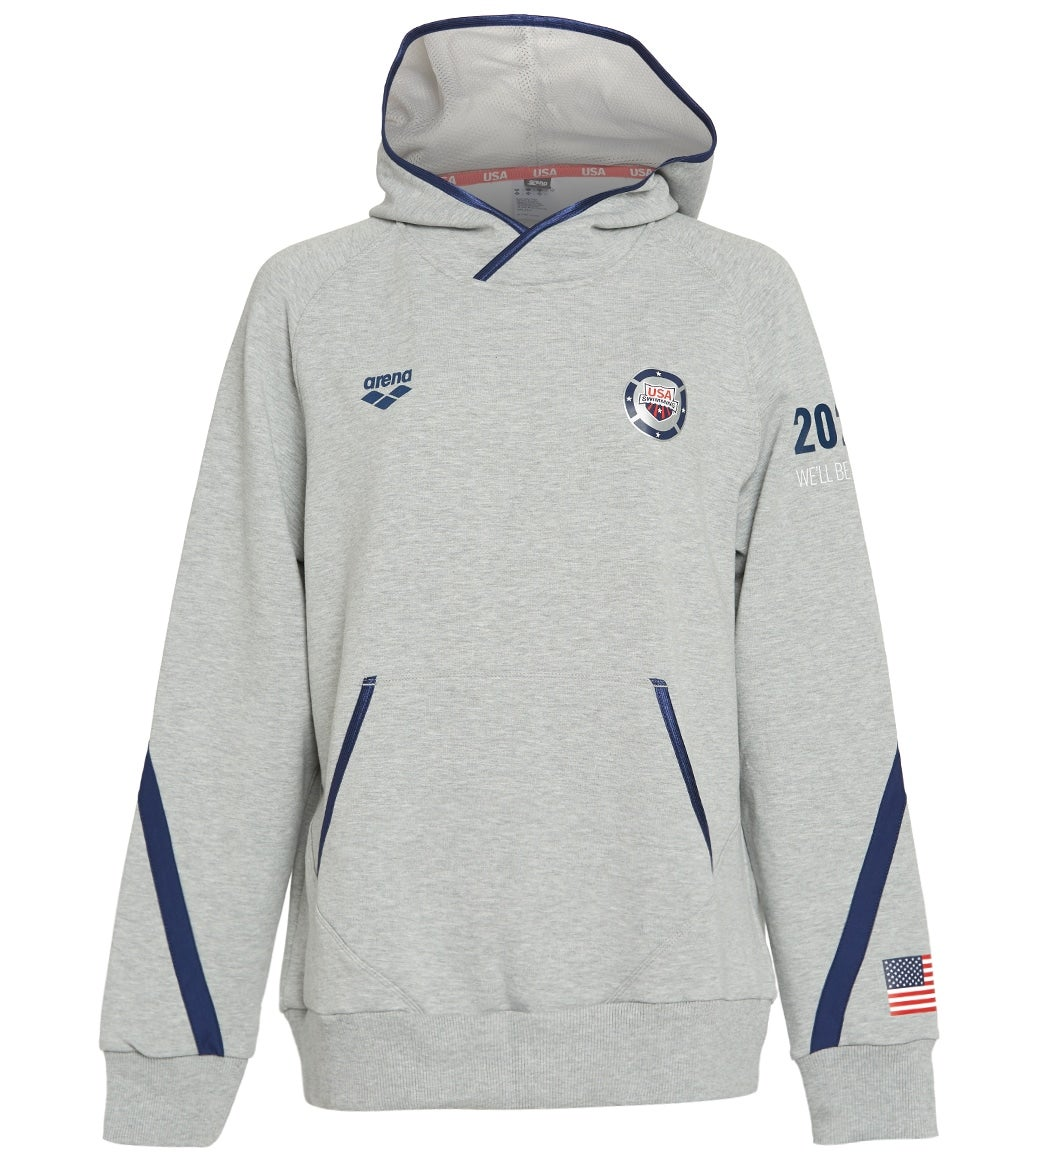 Stay warm and stay proud in the Arena USA Swimming Unisex 2021 We'll Be Ready National Team Hoodie.  This officially licensed USA Swimming hoodie features a brushed stretch baby fleece fabric, mesh-lined hood, and relaxed fit.  |https://www.swimoutlet.com/p/arena-usa-swimming-unisex-2021-well-be-ready-national-team-hoodie-8197350/?color=64815|0|stt5